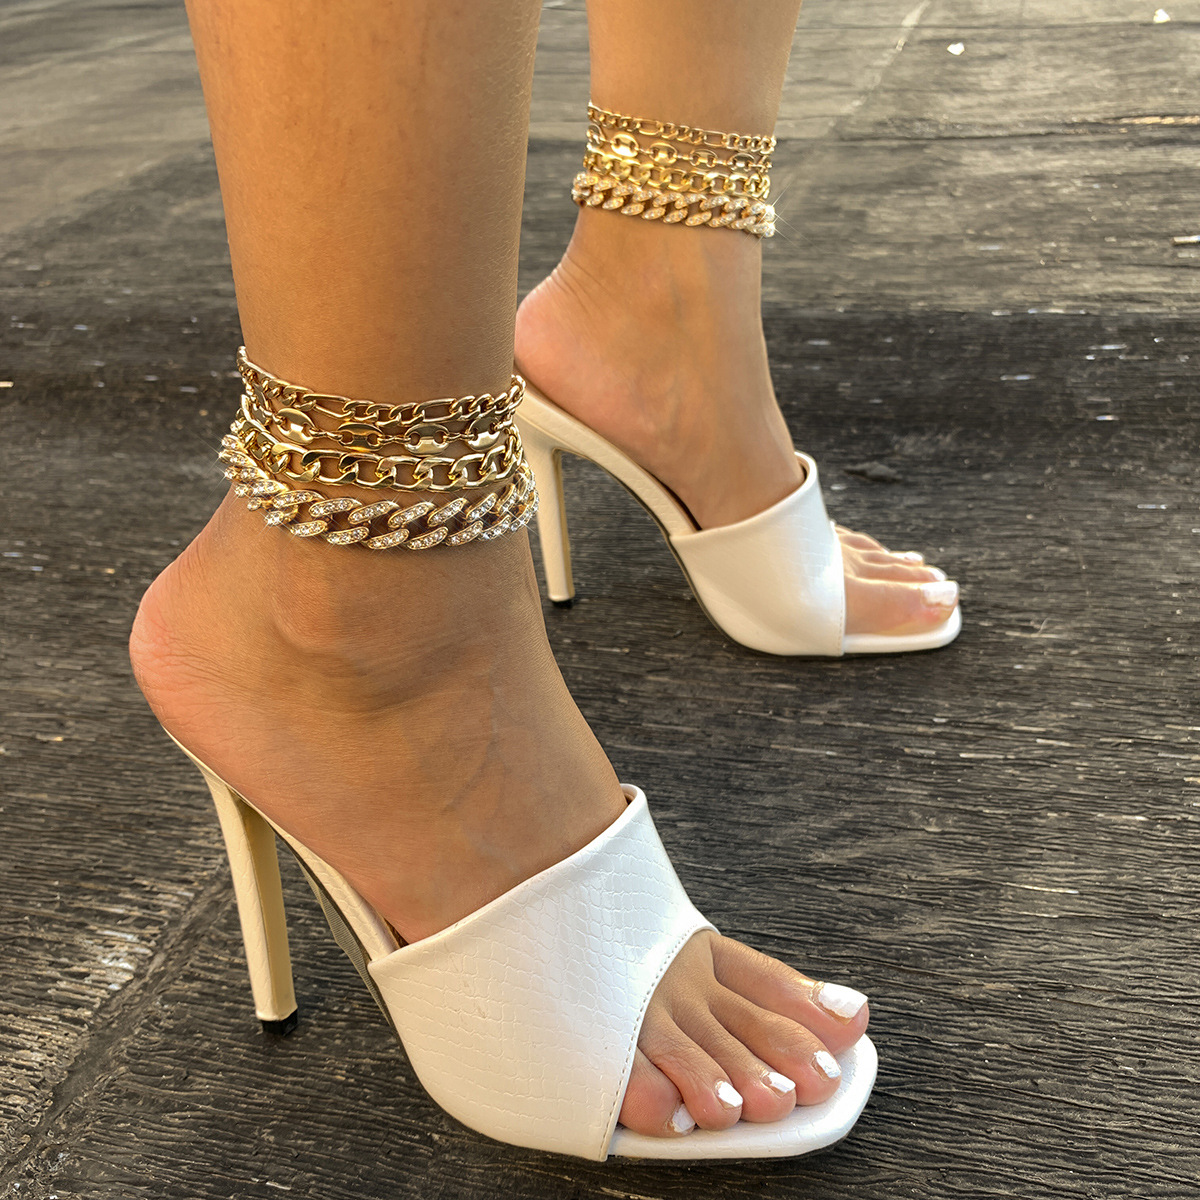 Stylish Cuban Buckle, Rhinestones, and Iron Anklet Set for Parties